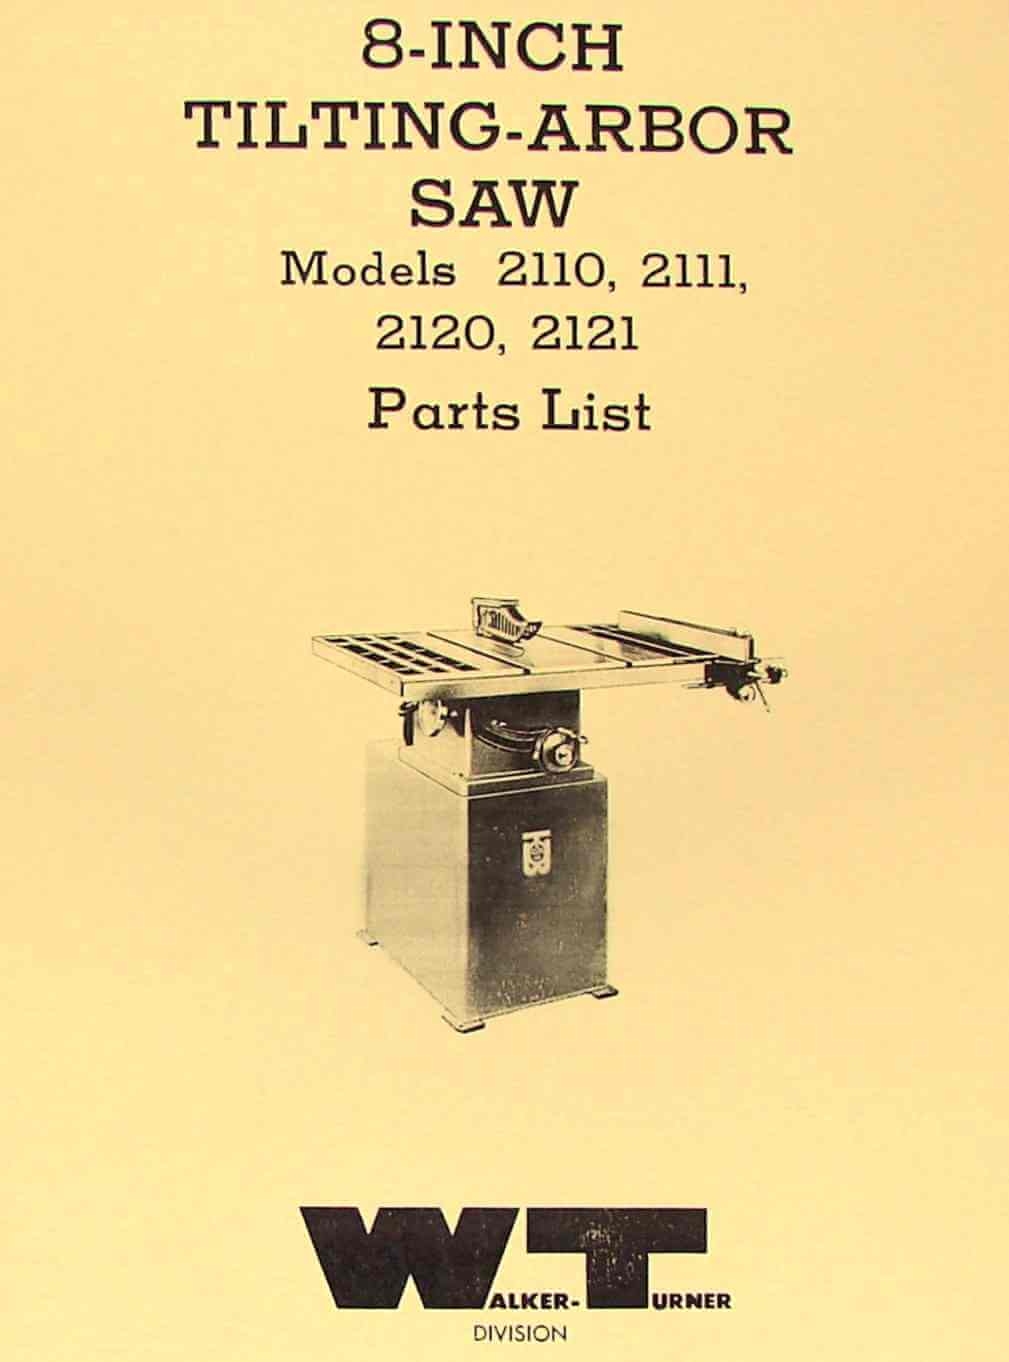 rockwell shop series table saw manual